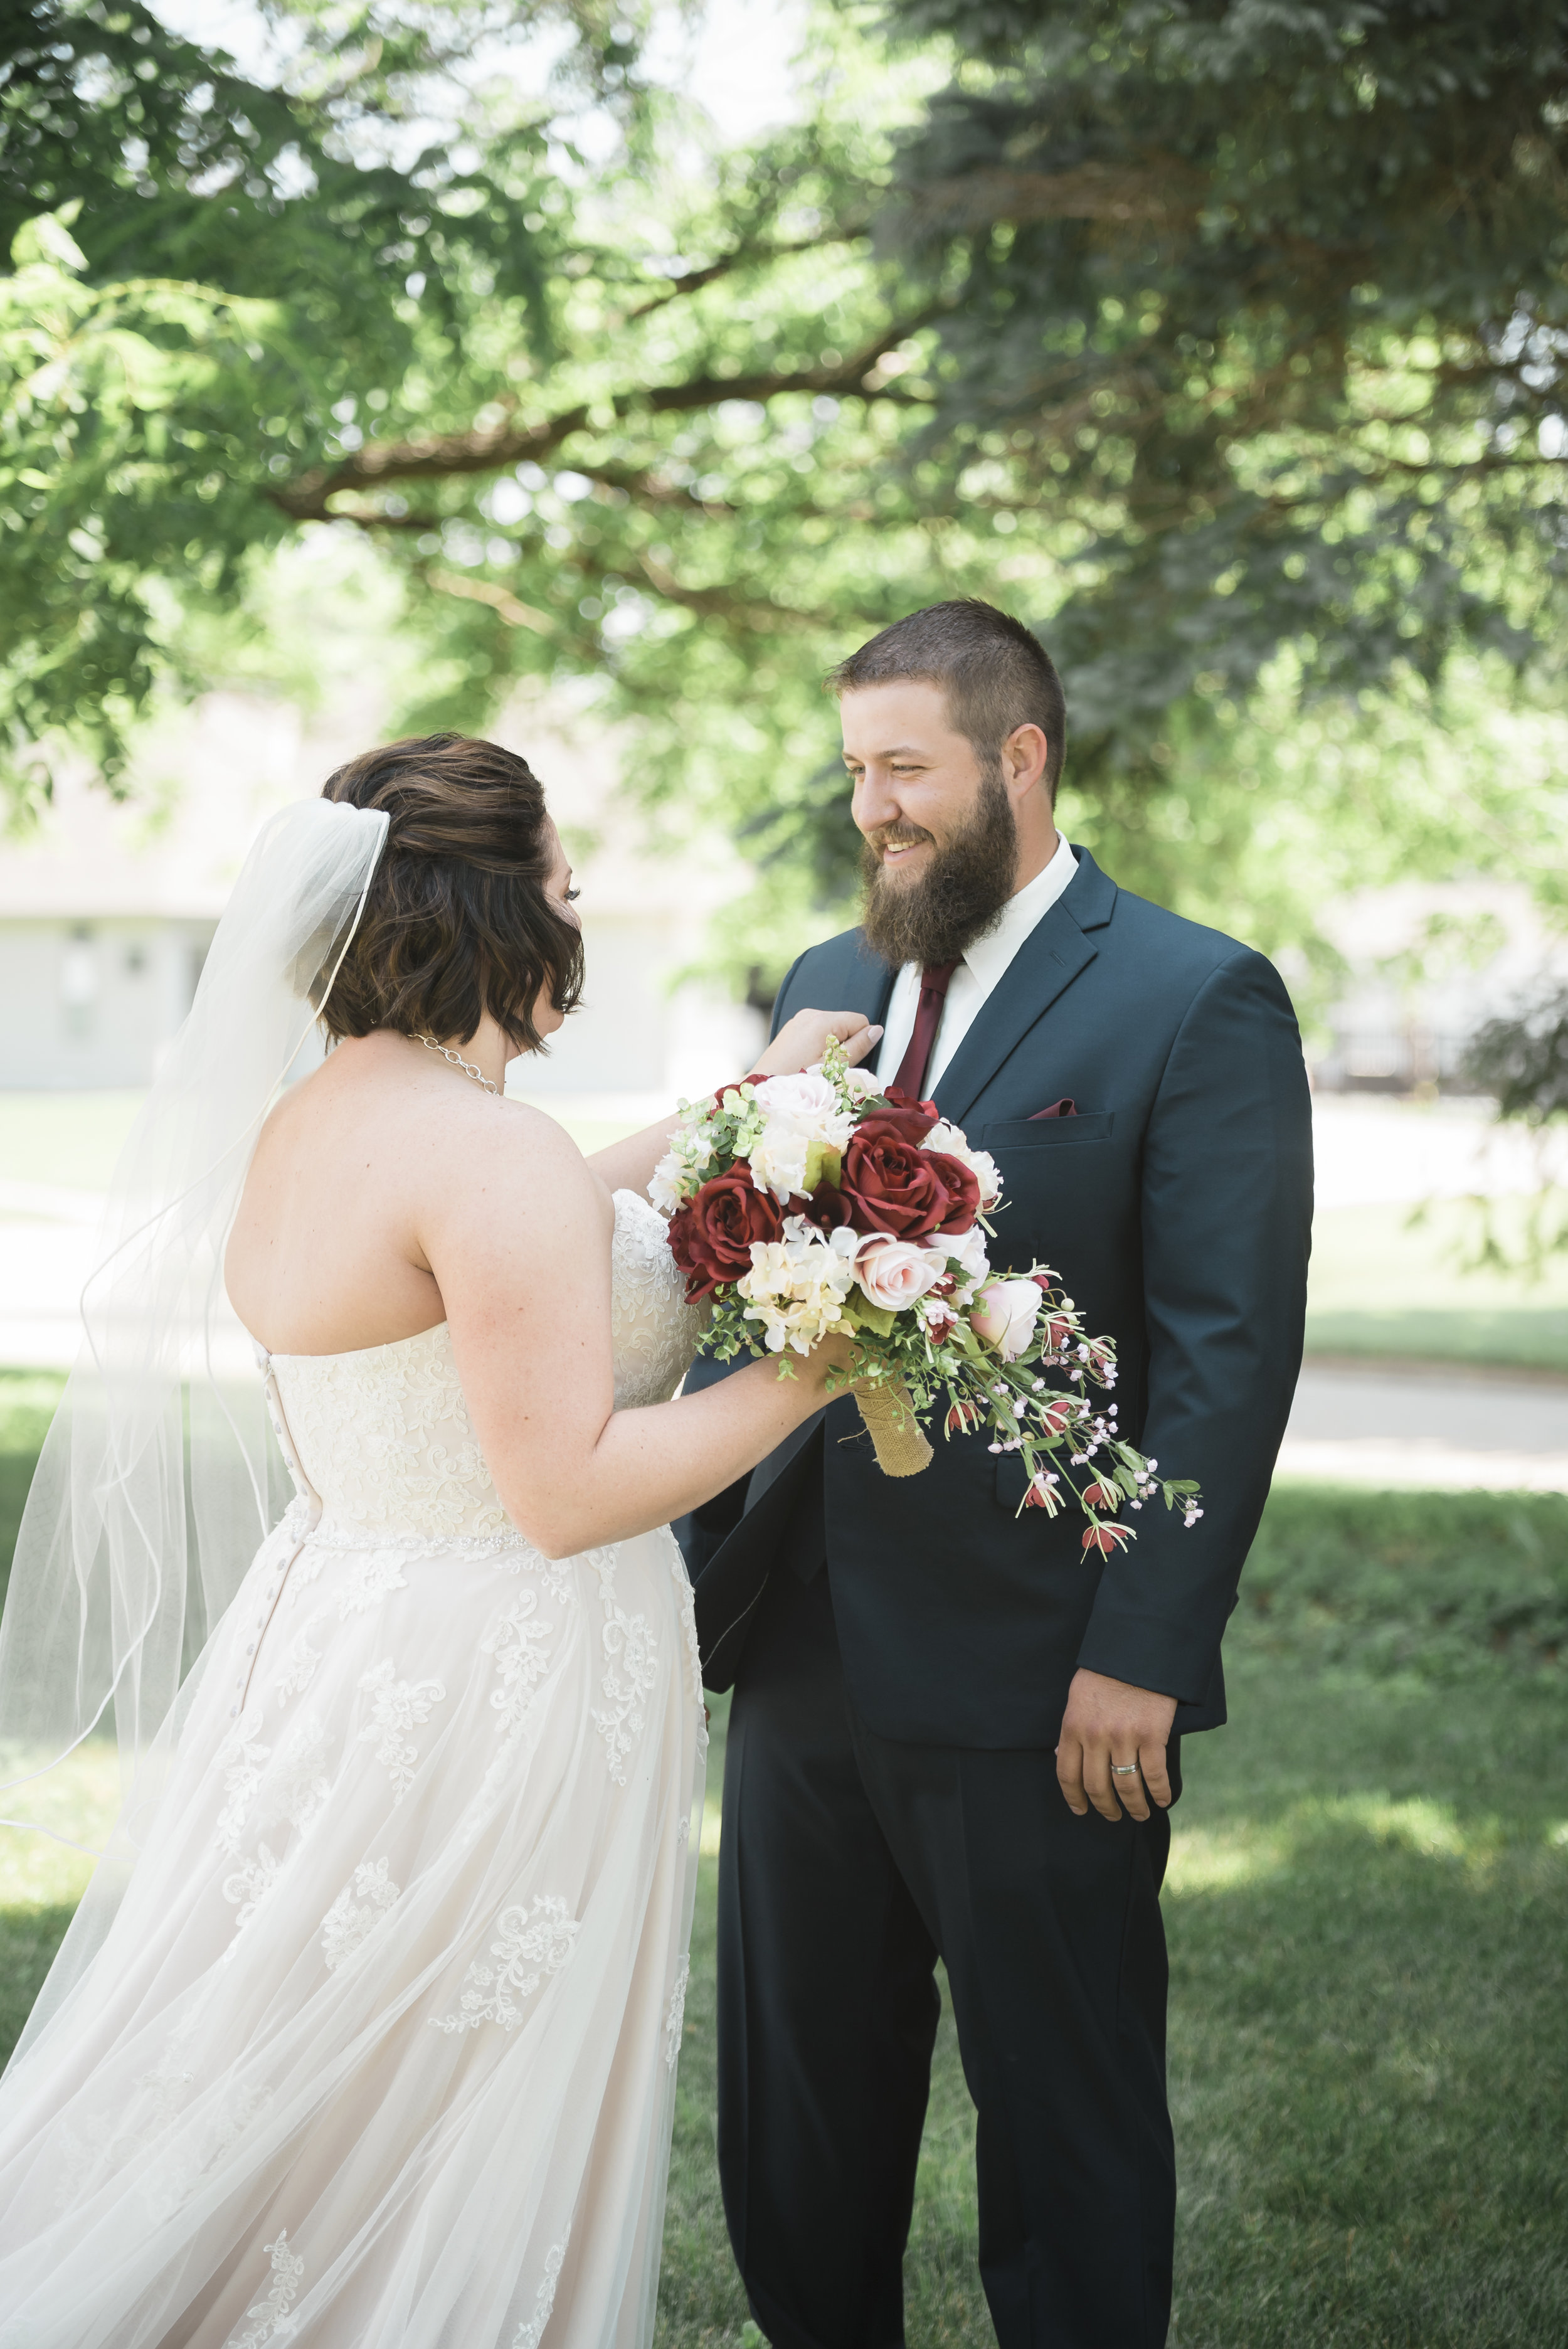 Bethany Melvin Photography | Sioux Falls Wedding Photographer